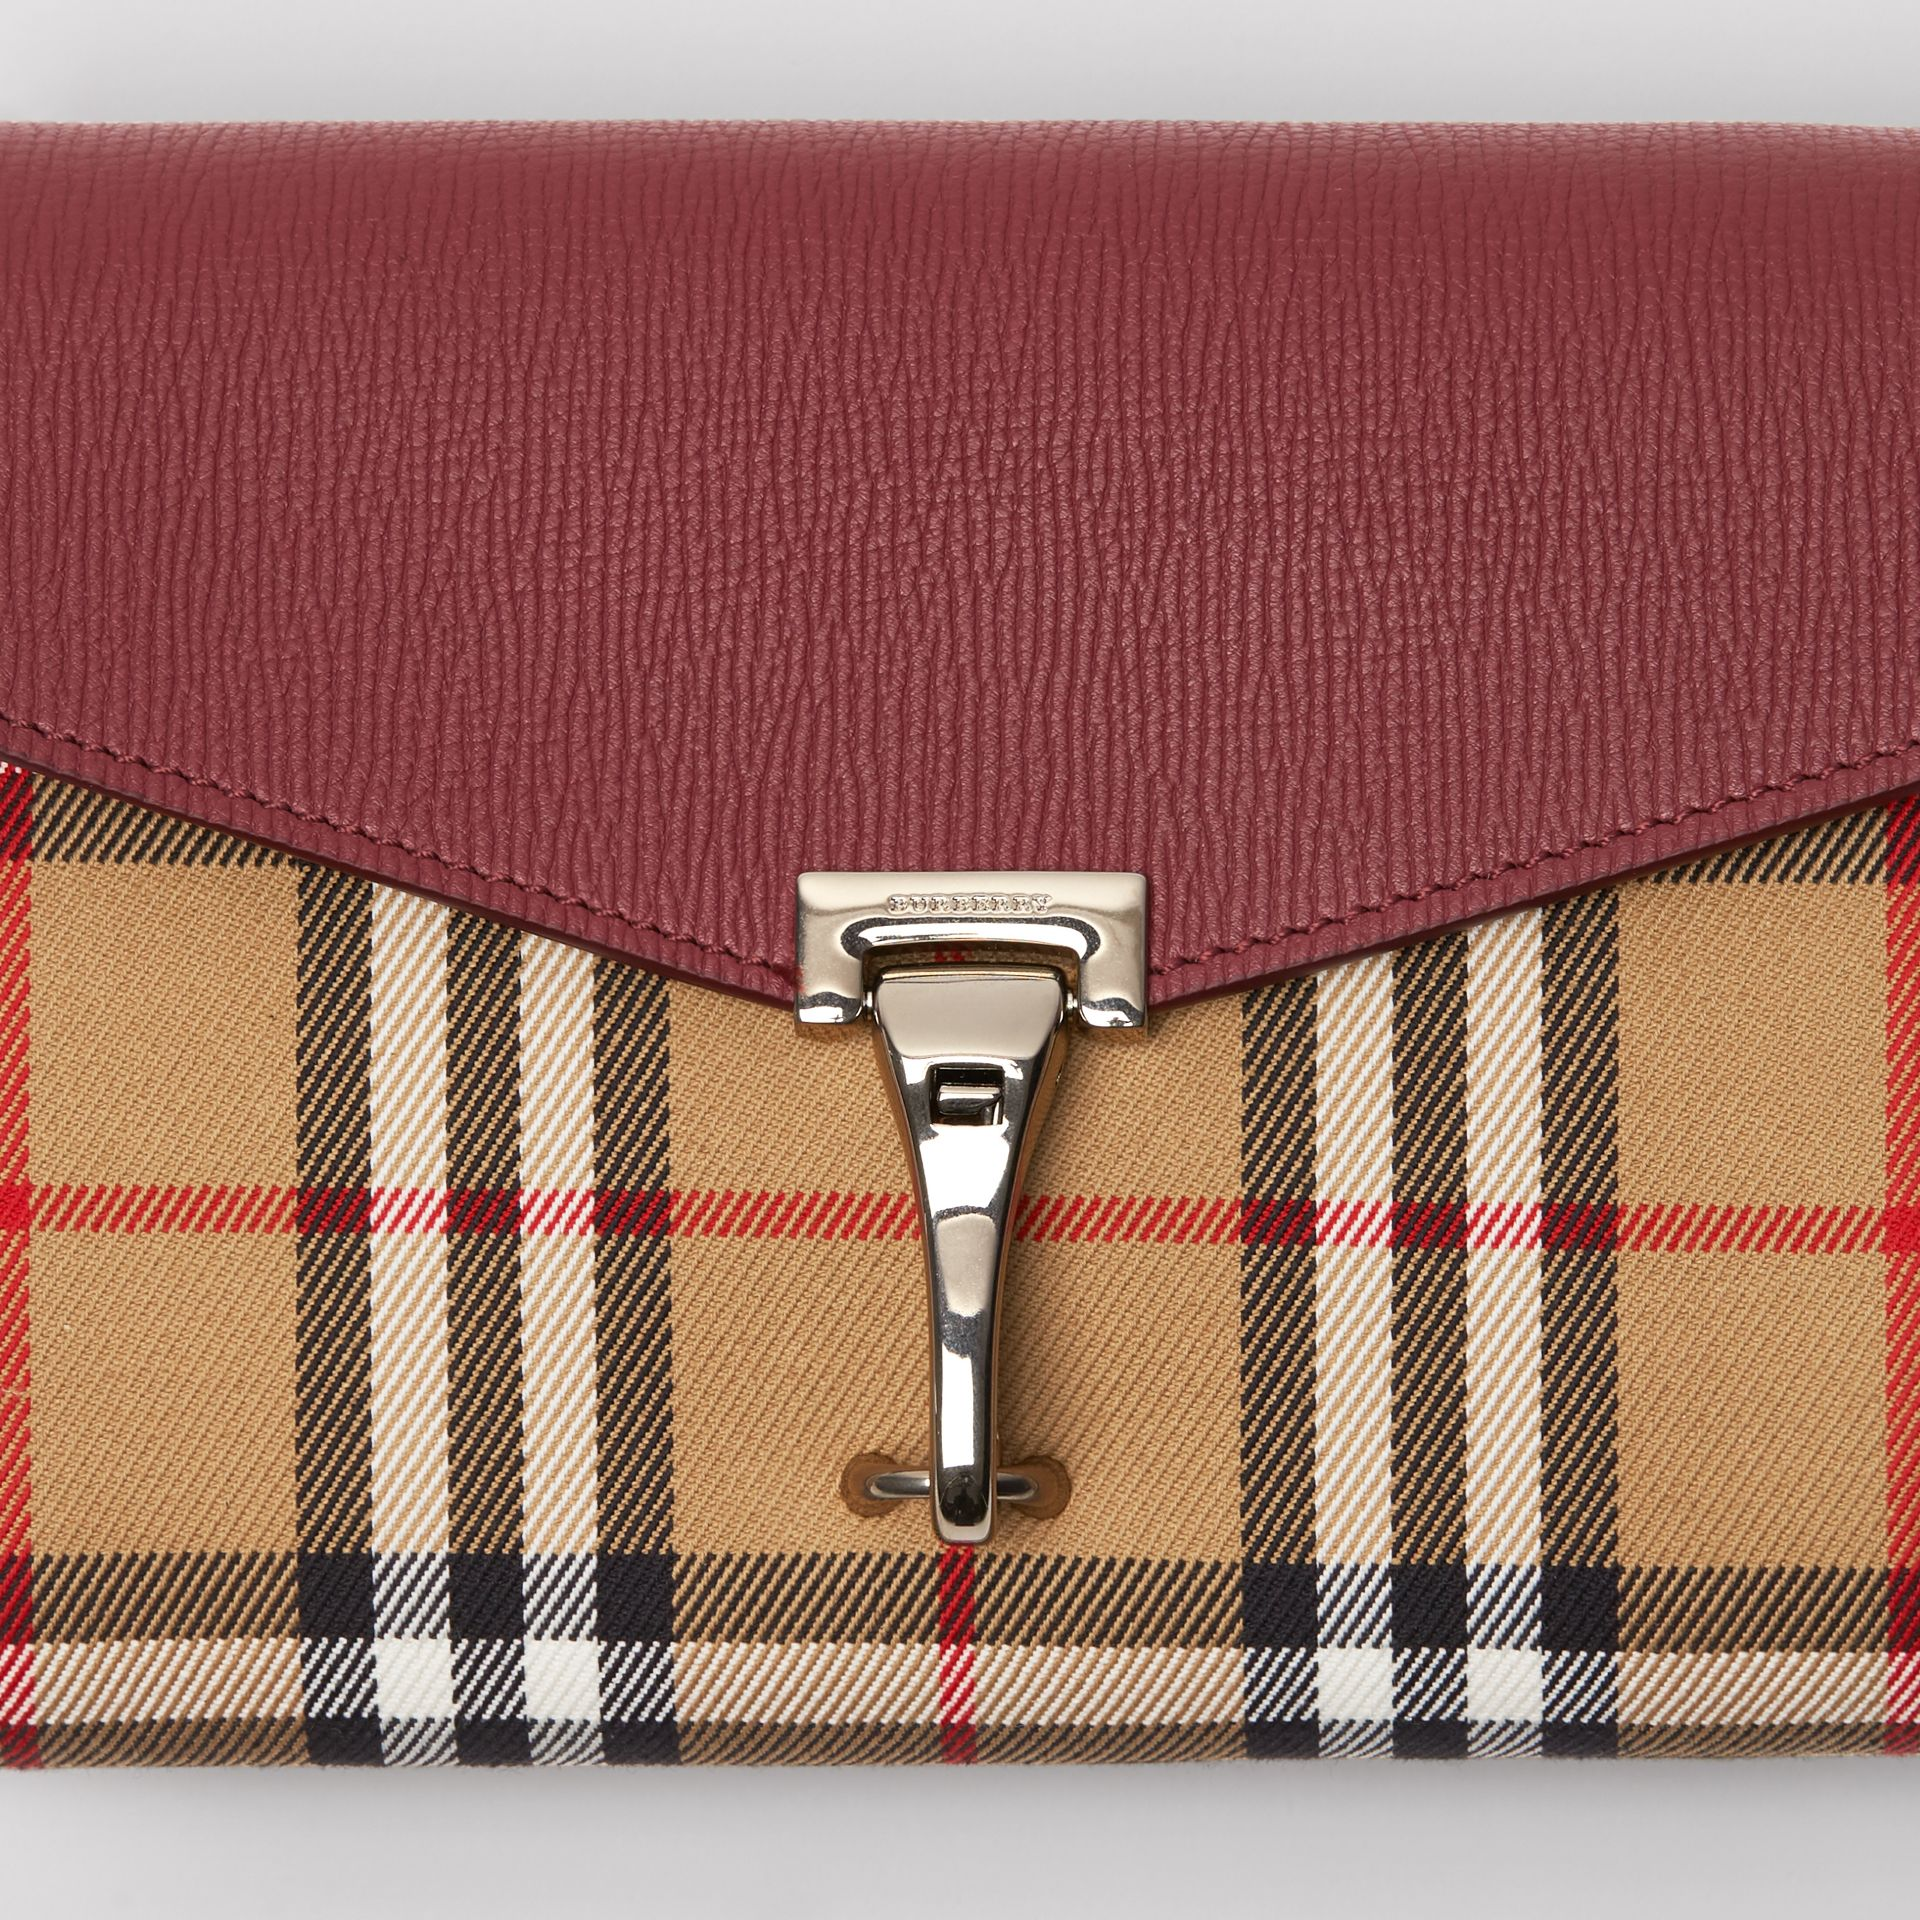 Mini Leather and Vintage Check Crossbody Bag in Crimson - Women | Burberry - gallery image 1